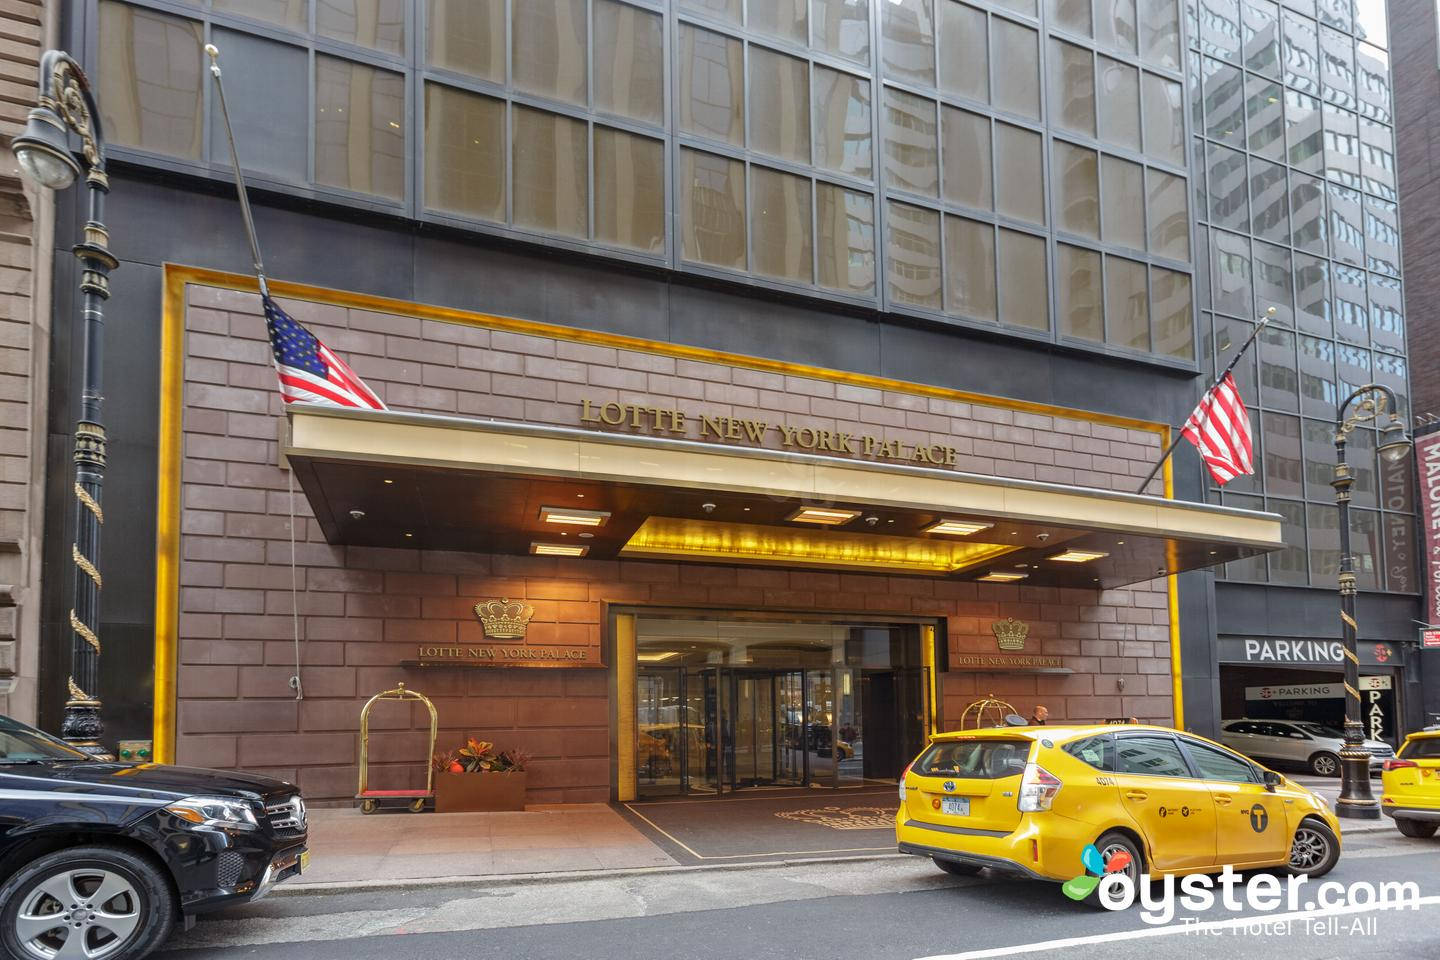 Lotte New York Palace Review: What To REALLY Expect If You Stay